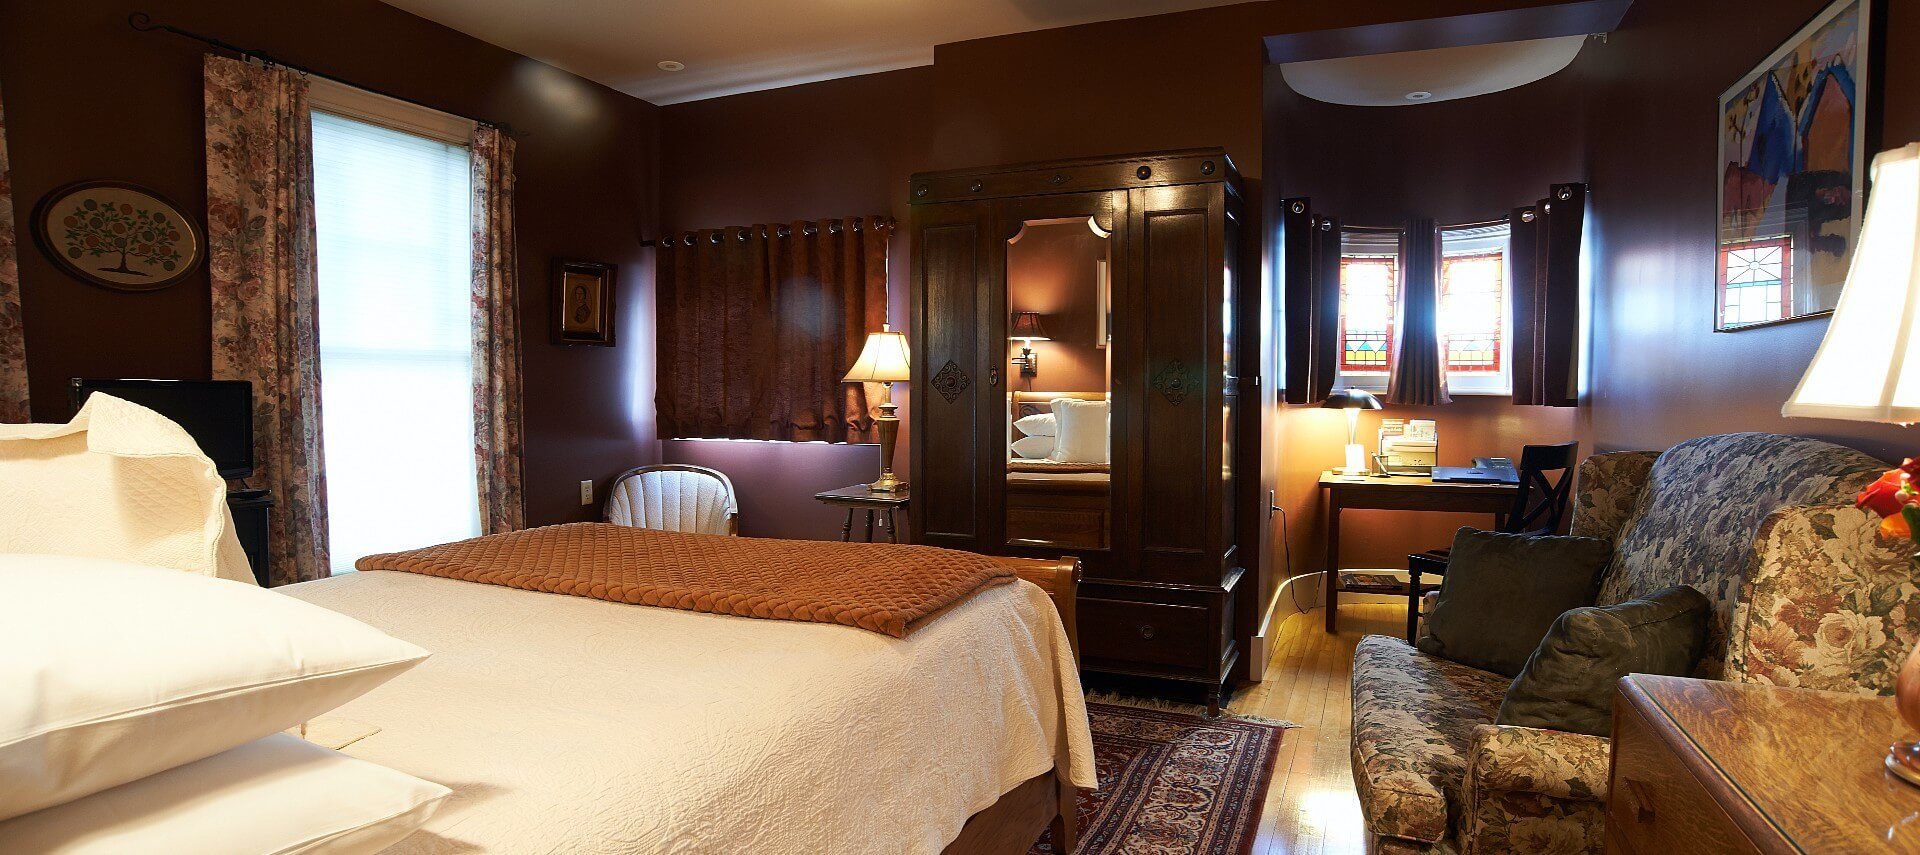 Large bedroom showing bed with white linens, dark brown walls, upholstered chair, sitting desk and large armoire.